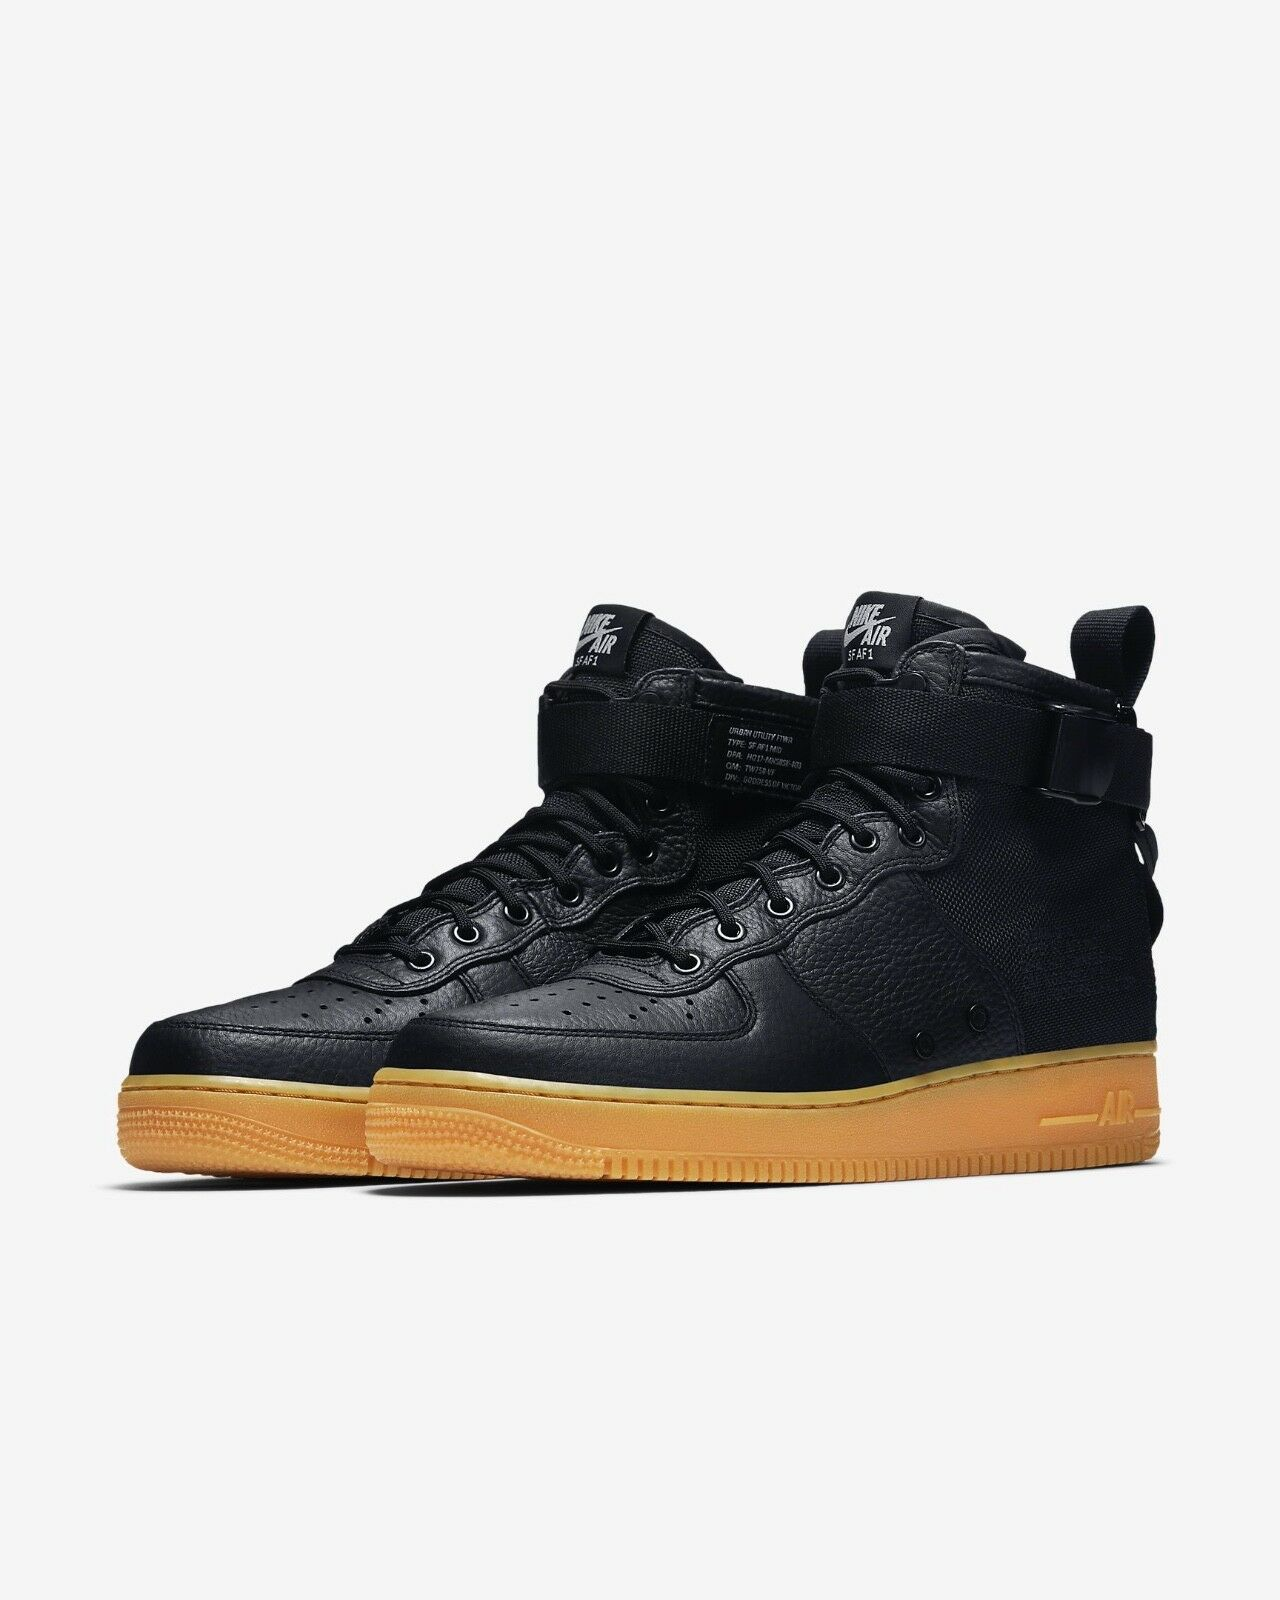 NIKE SF AF1 MID Taille9 Taille9 Taille9 AIR Obliger 1 noir GUM 2e9c11